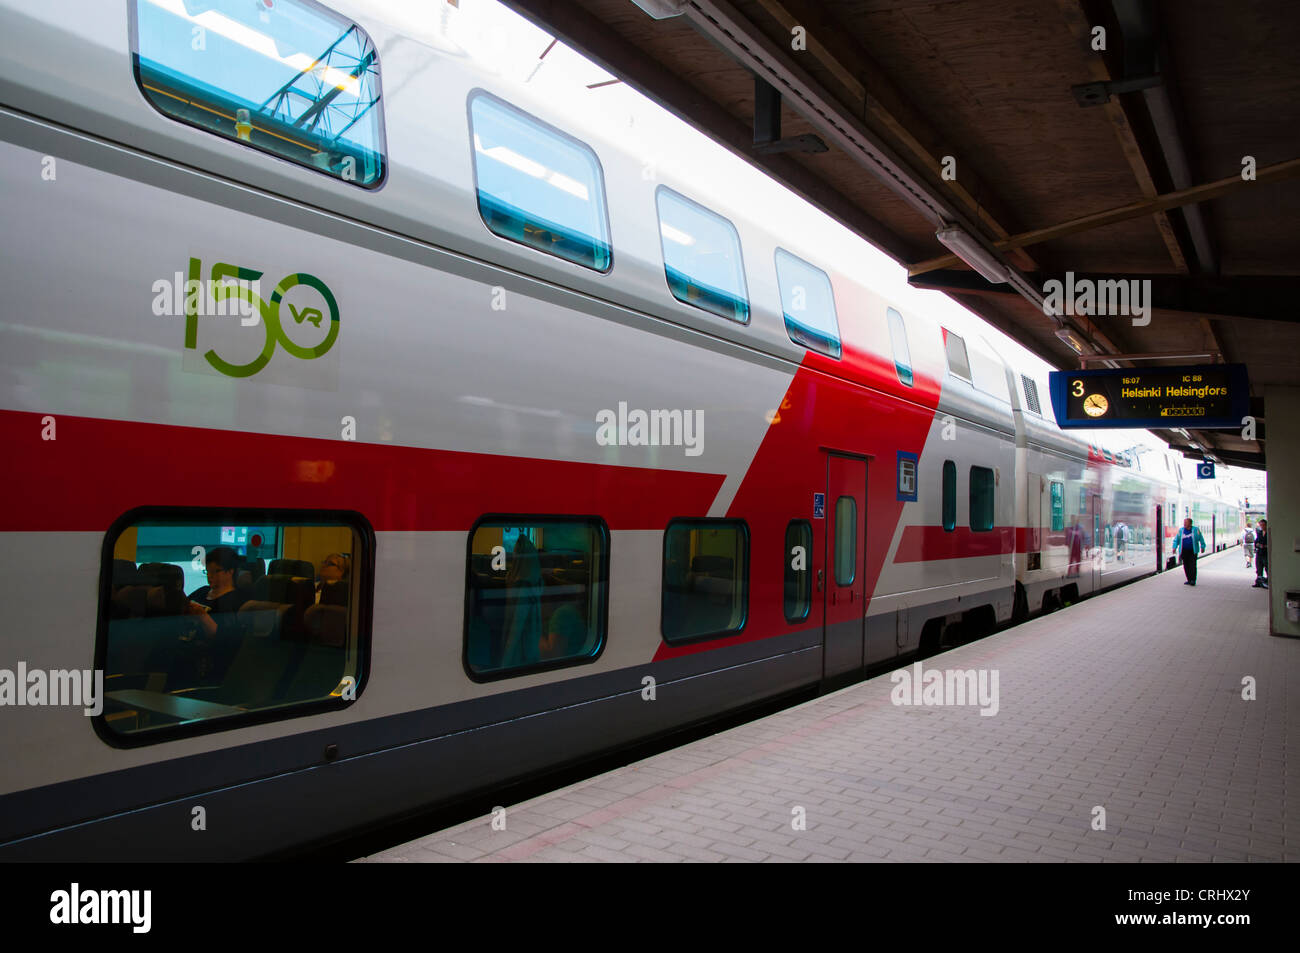 Two storey train at railway station Tampere Finland Europe - Stock Image